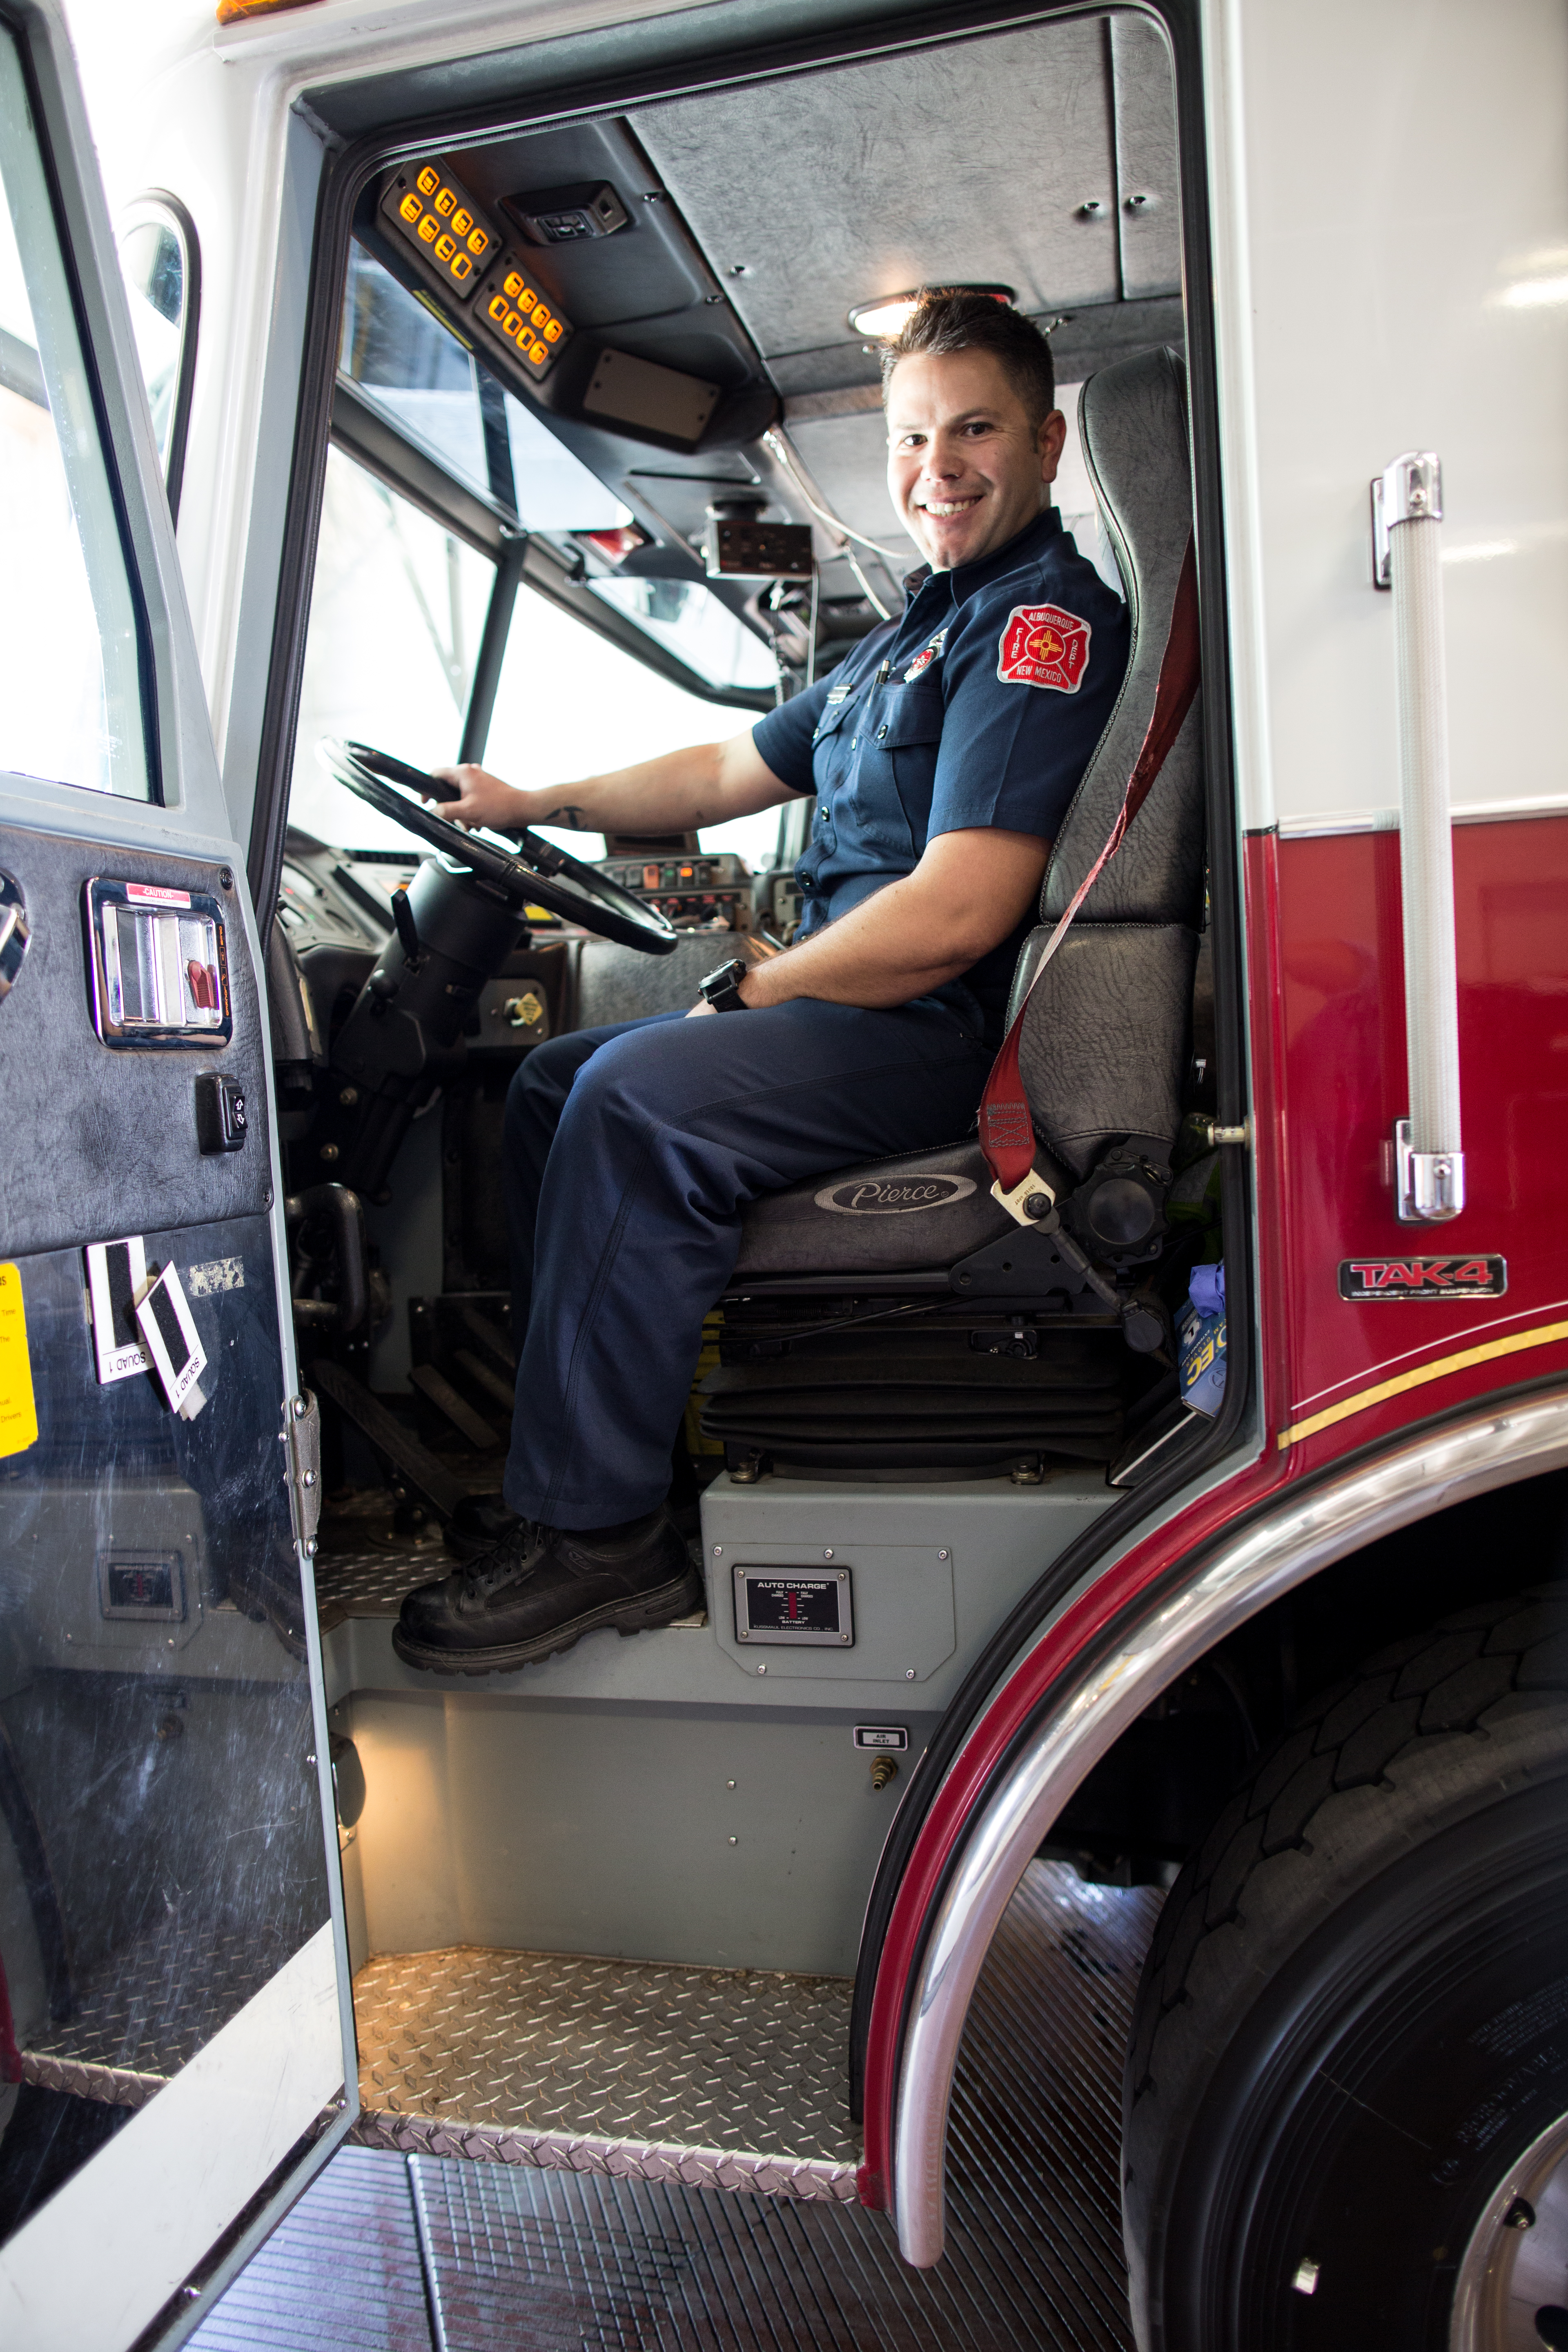 Albuquerque The Magazine The 911 Ride Alongs with First – Hazmat Driver